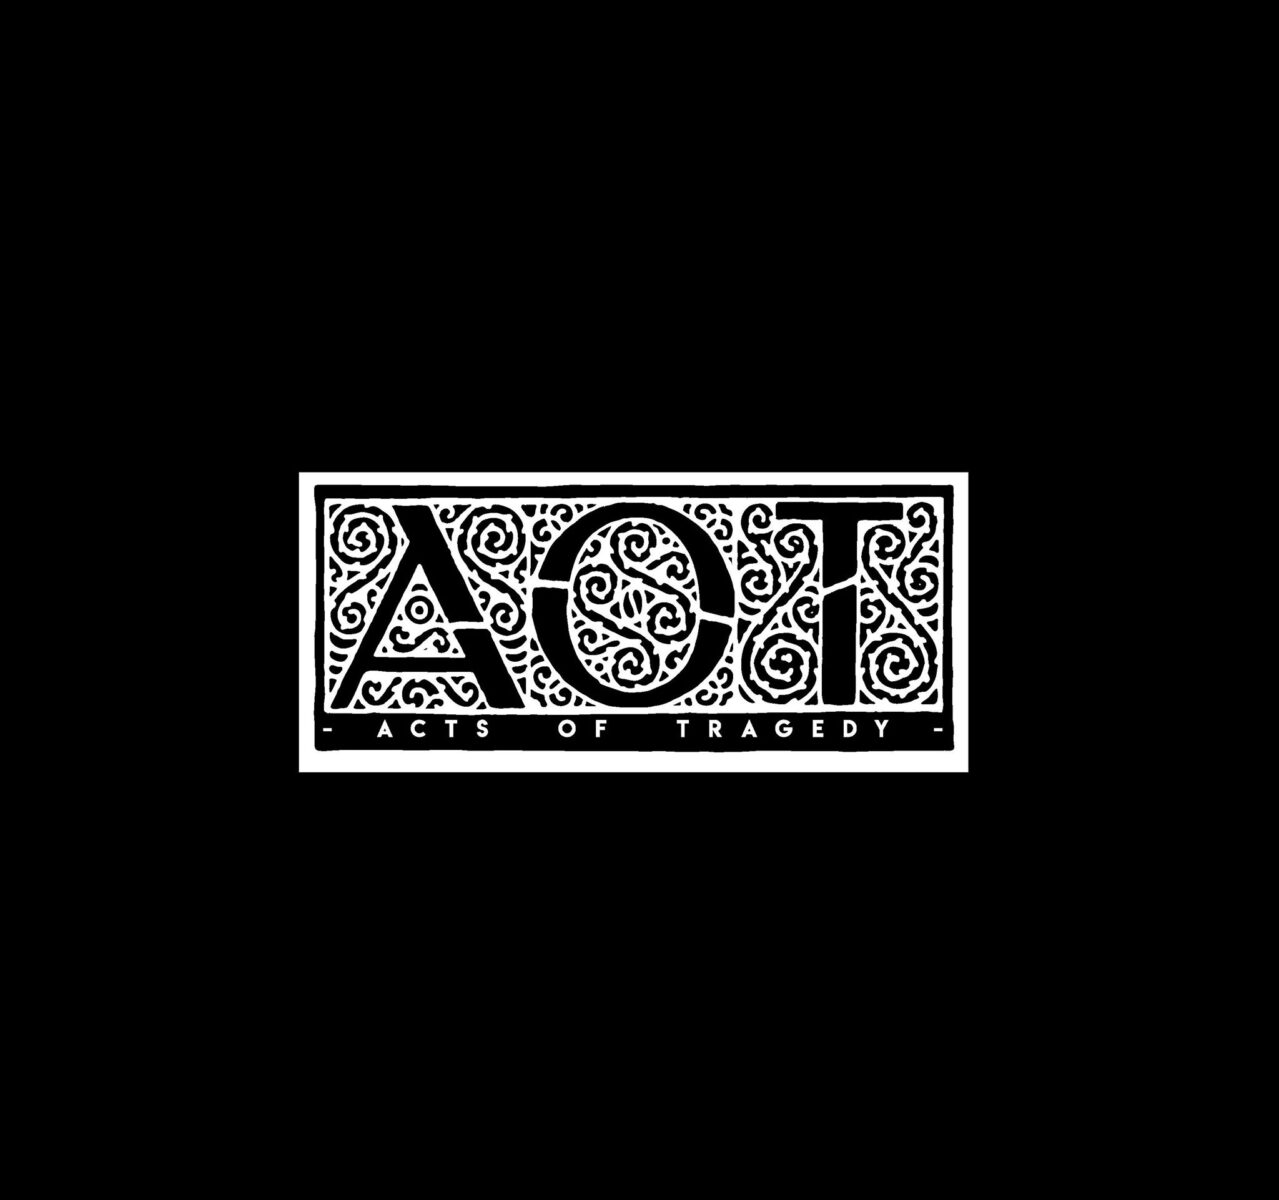 Acts of Tragedy - AOT - Volcano Records & Promotion - 2020 - Sa Scena Sarda